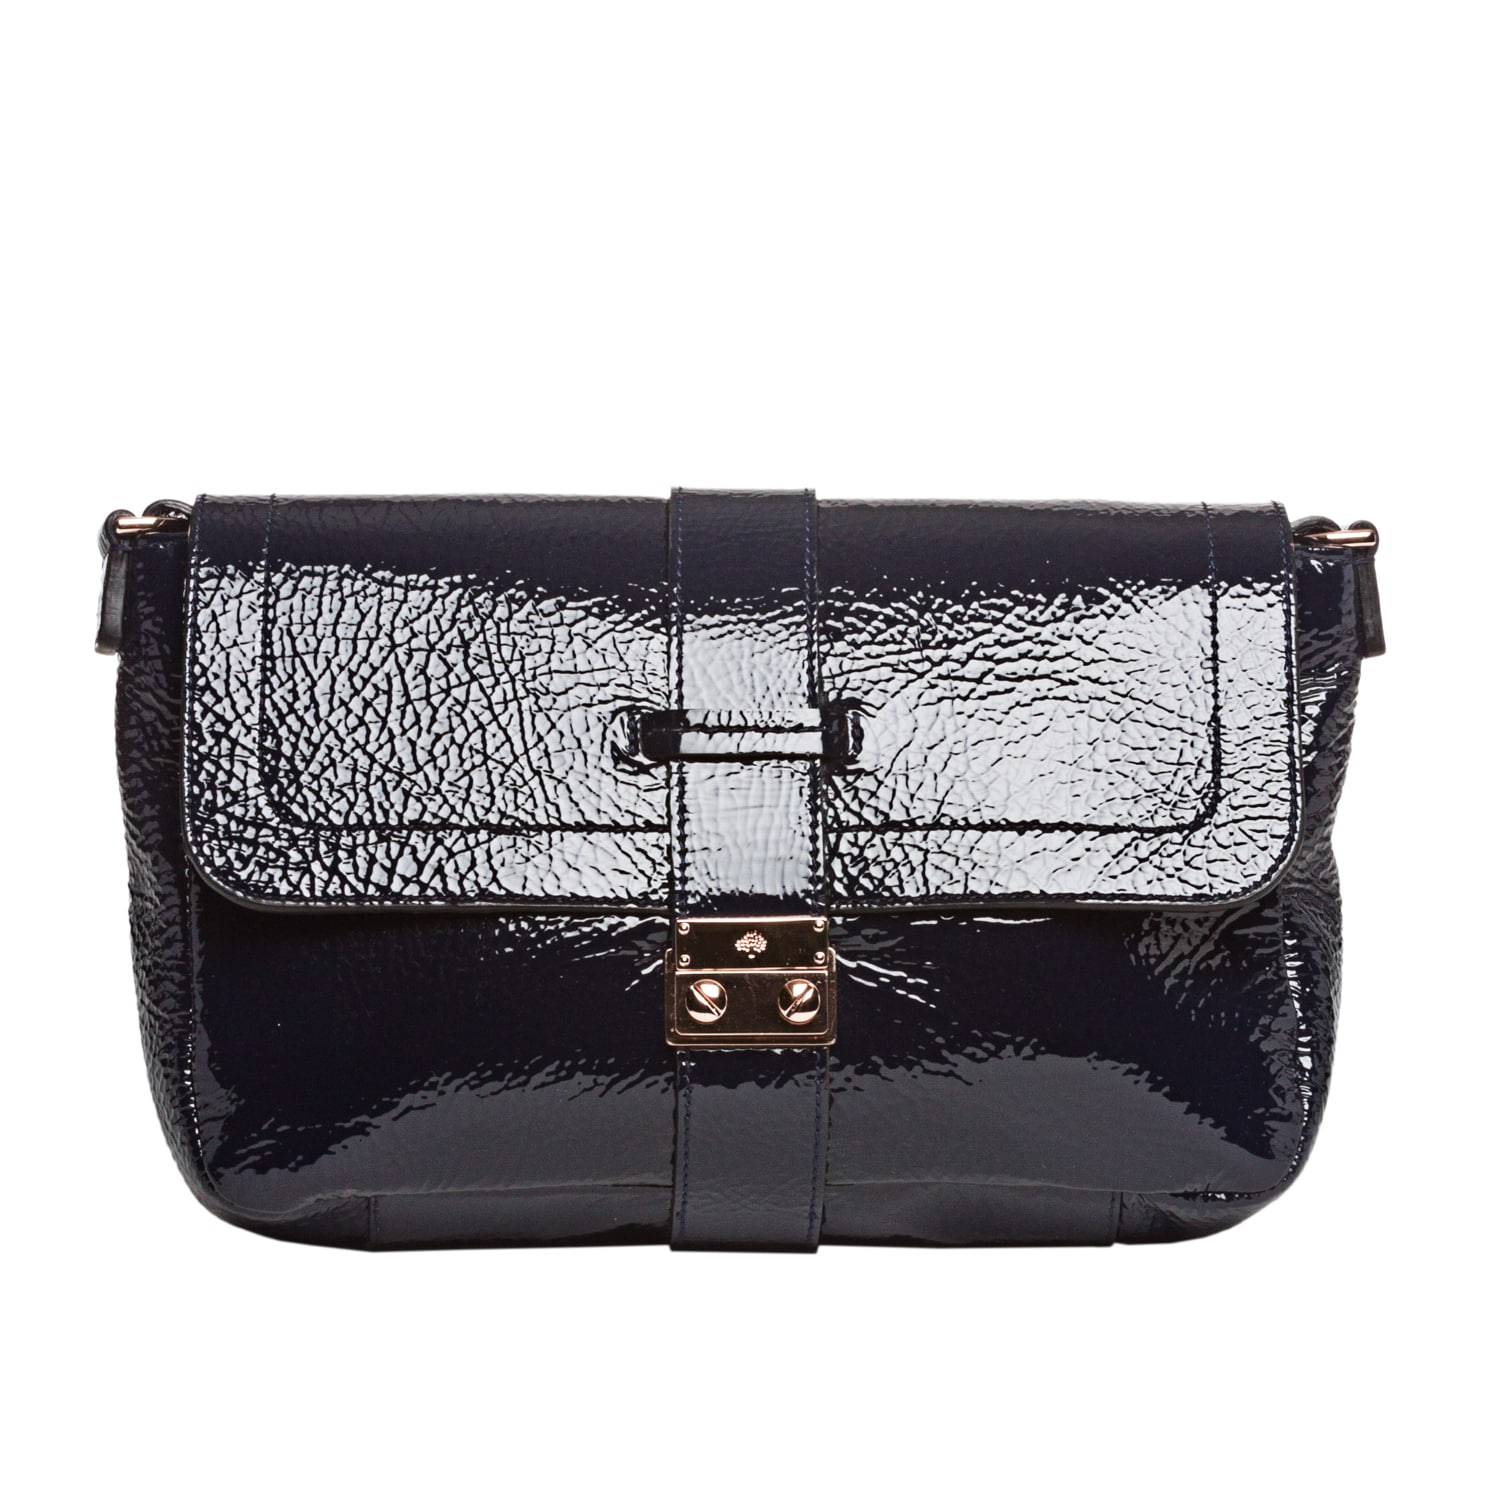 Mulberry Navy Patent Leather Shoulder Handbag - Thumbnail 0